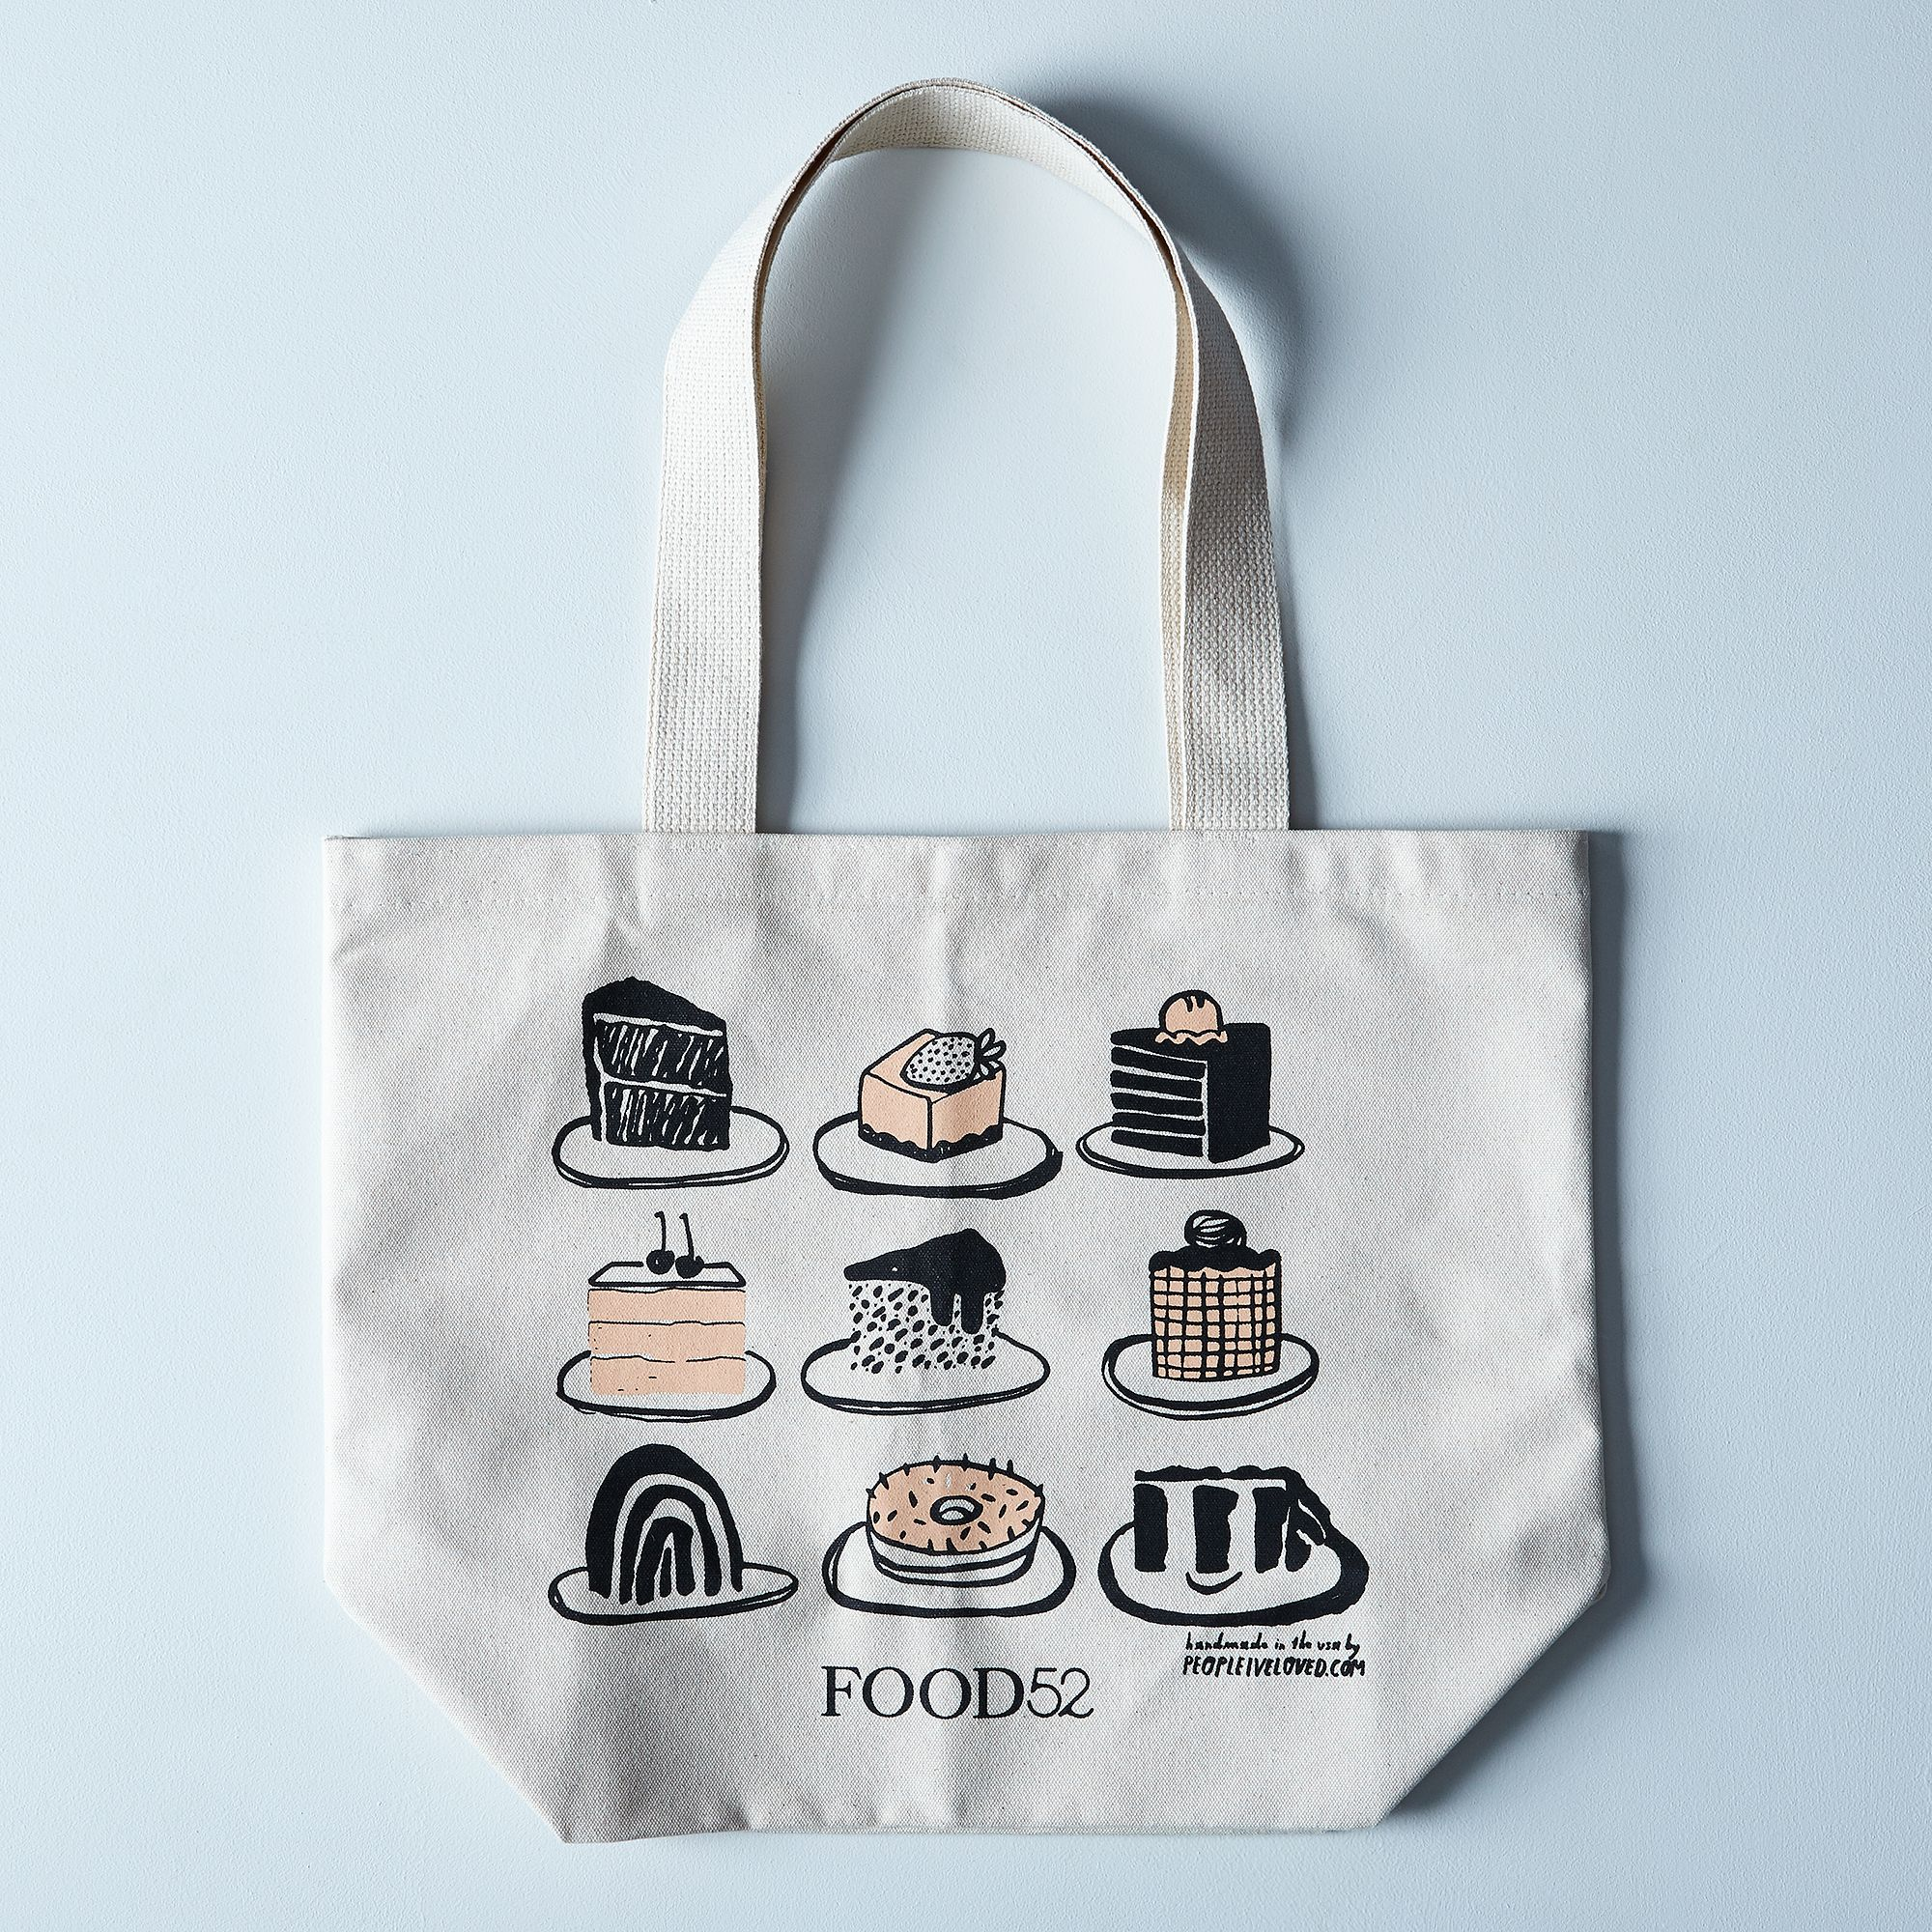 5b9b56fb b382 4a18 9280 74c7facb8063  2016 1106 people ive loved food52 illustrated desserts tote silo rocky luten 241